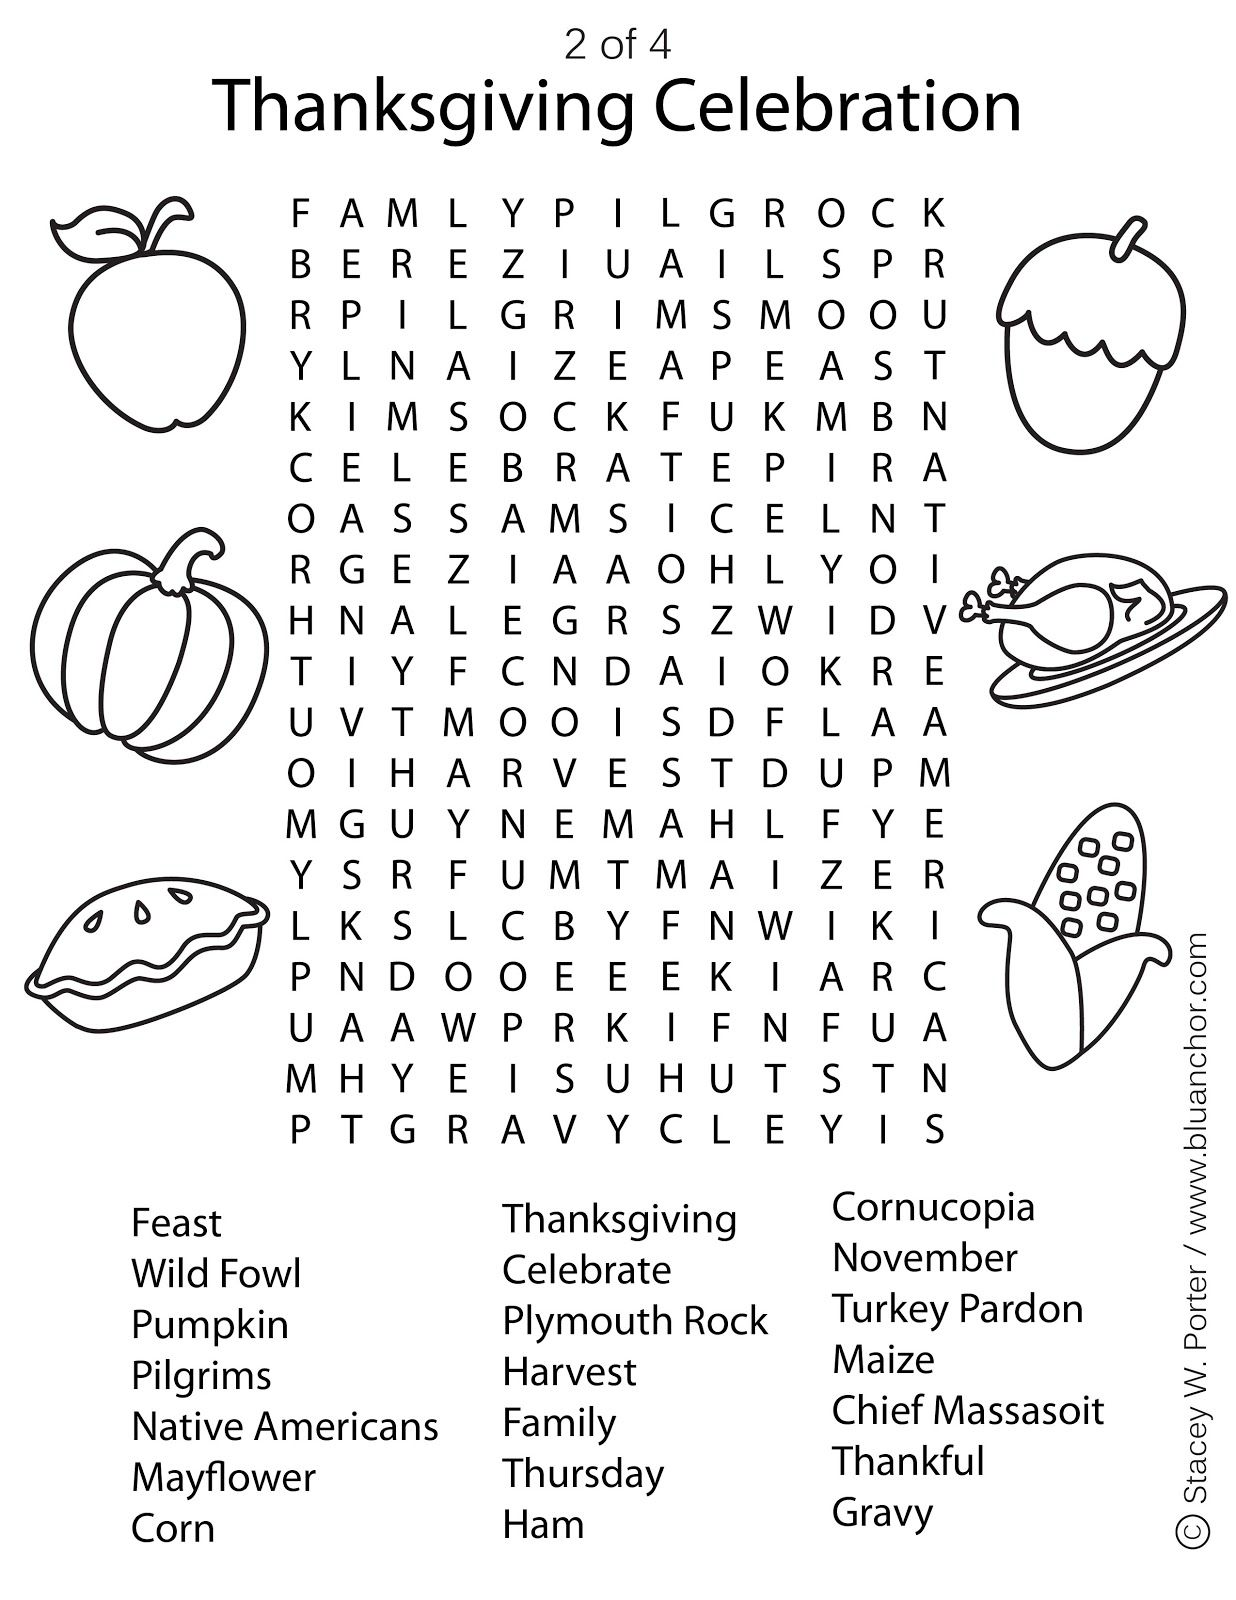 Free Thanksgiving Printables Puzzles Thanksgiving Coloring Pages Free Thanksgiving Printables Free Thanksgiving Coloring Pages